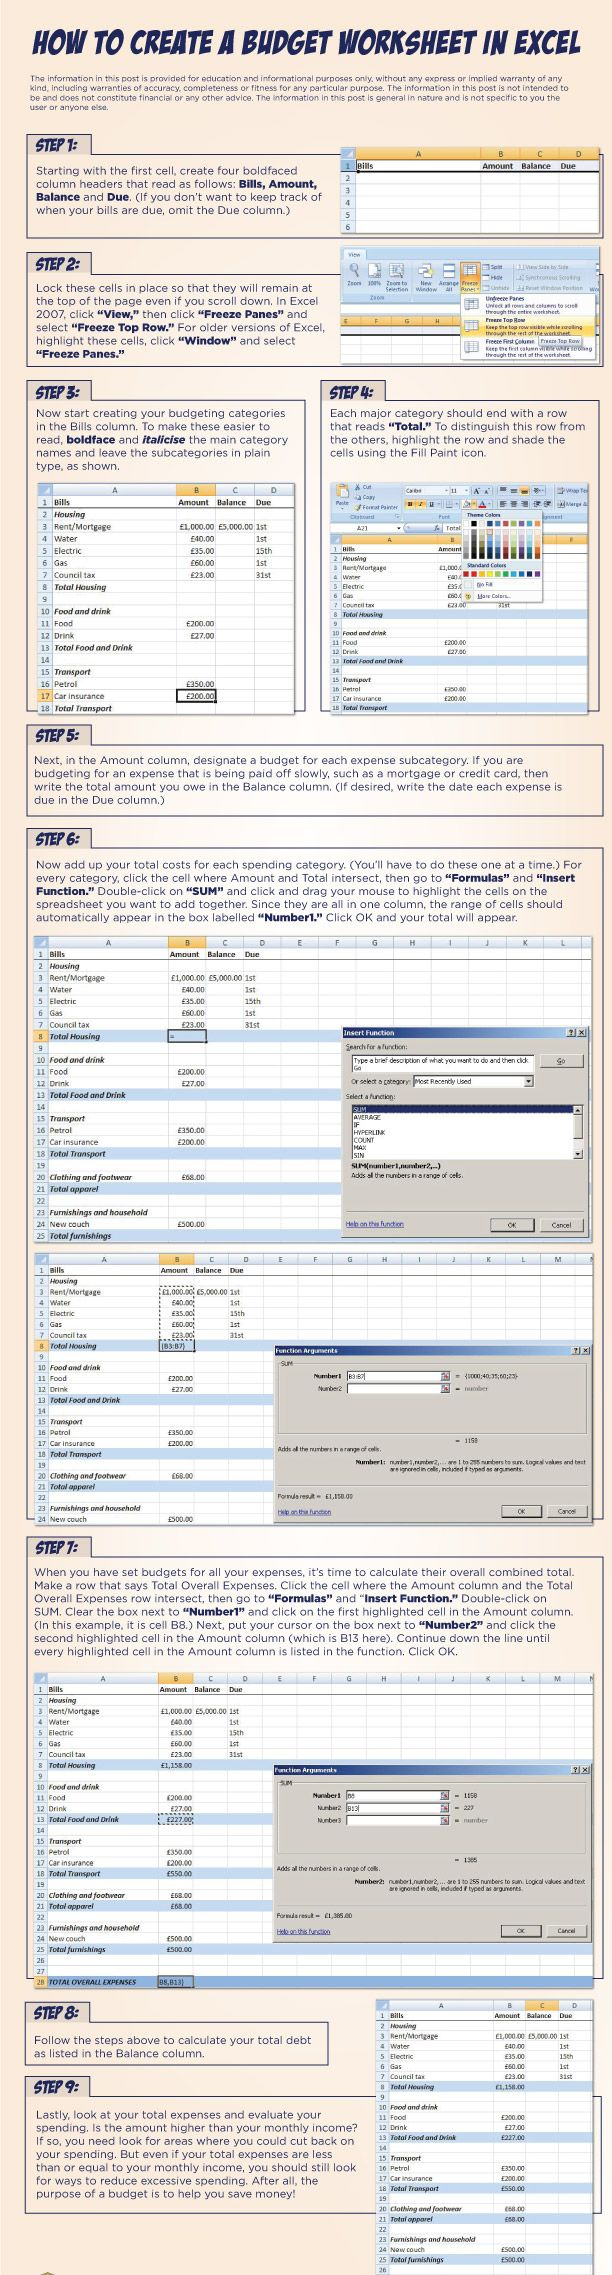 9 step by step instructions on how to create a budget worksheet in excel  www.quickquid.co.uk/quid-corner/2012/07/05/how-to-create-a-budget-worksheet-in-excel/